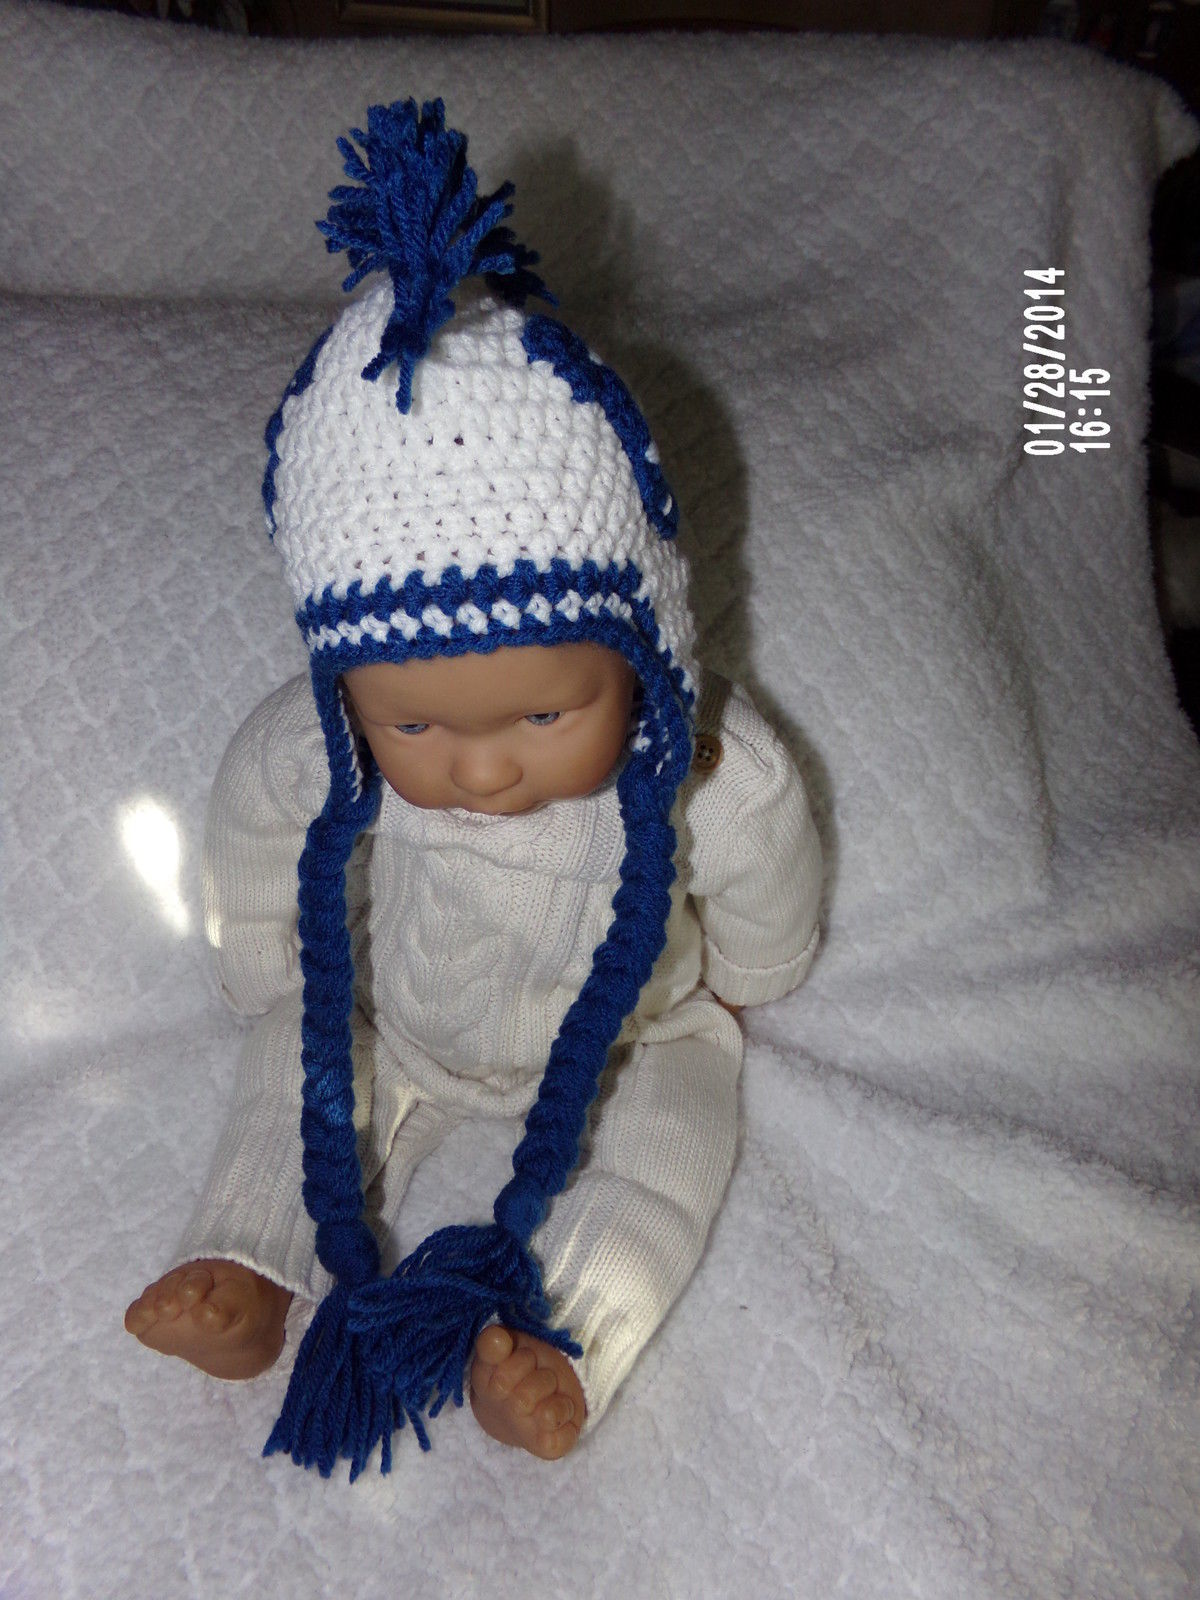 Crochet Hair Indianapolis : INDIANAPOLIS COLTS MOHAWK HAT w/ BRAIDS~~SIZE 3 - 6 MONTHS~~HAND ...